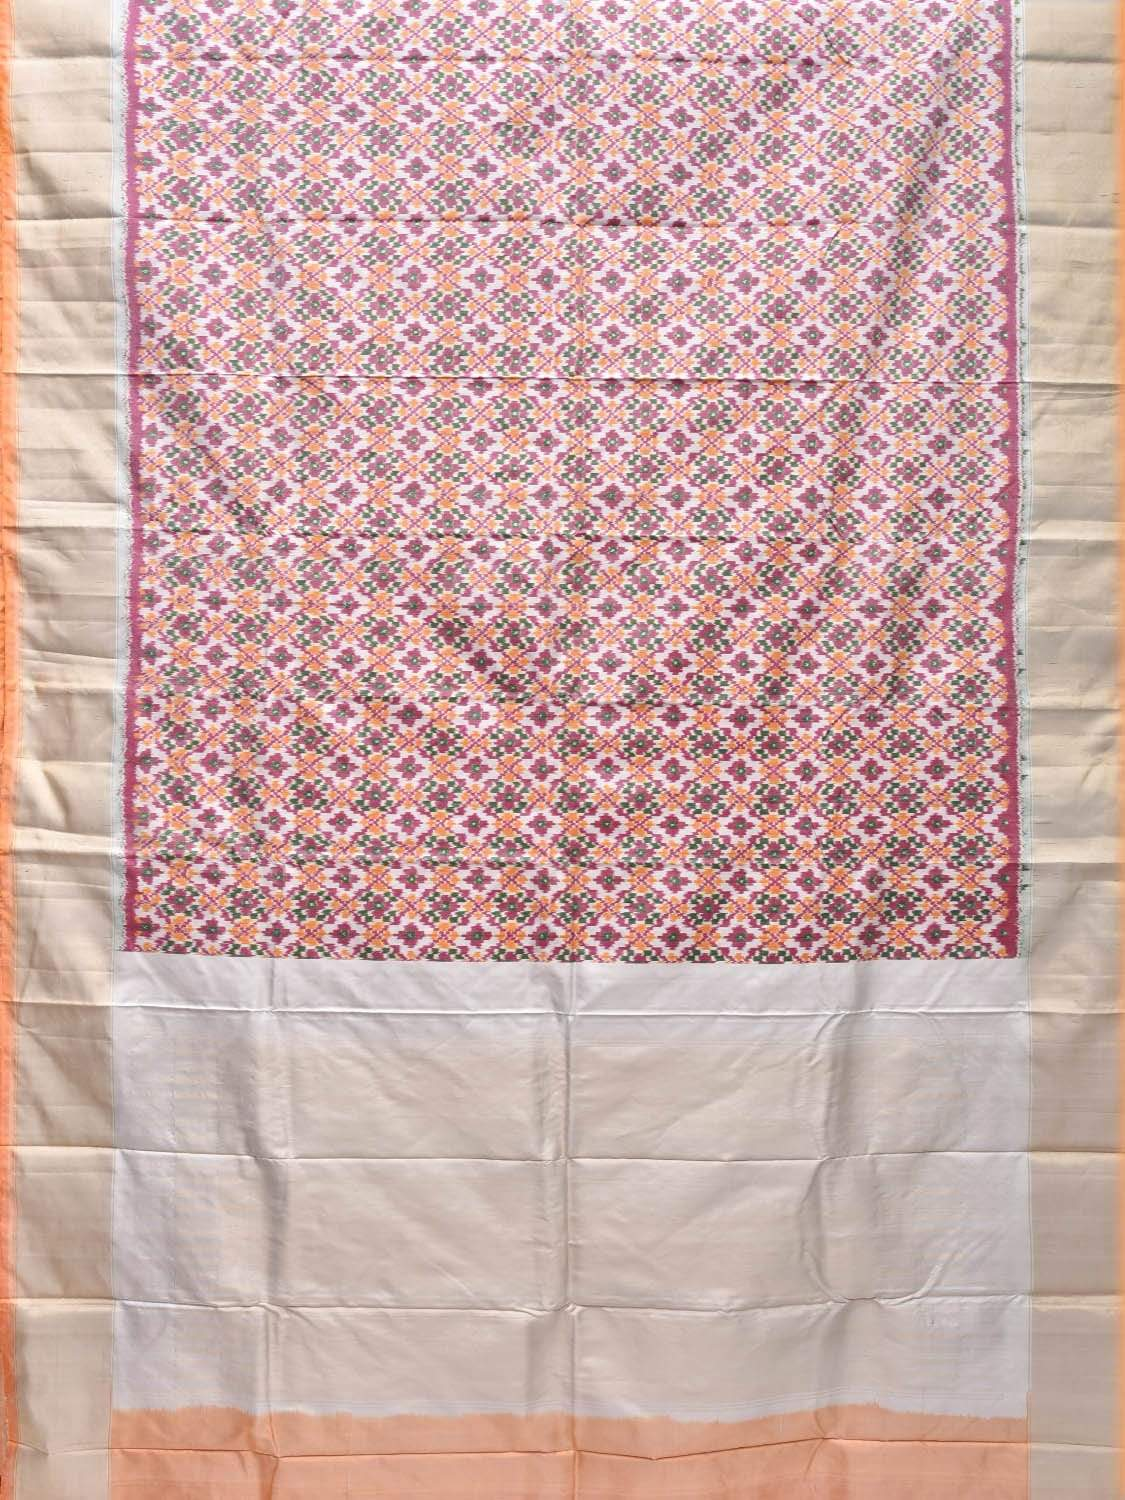 Cream and Baby Pink Pochampally Single Ikat Silk Handloom Saree with All Over Design i0558